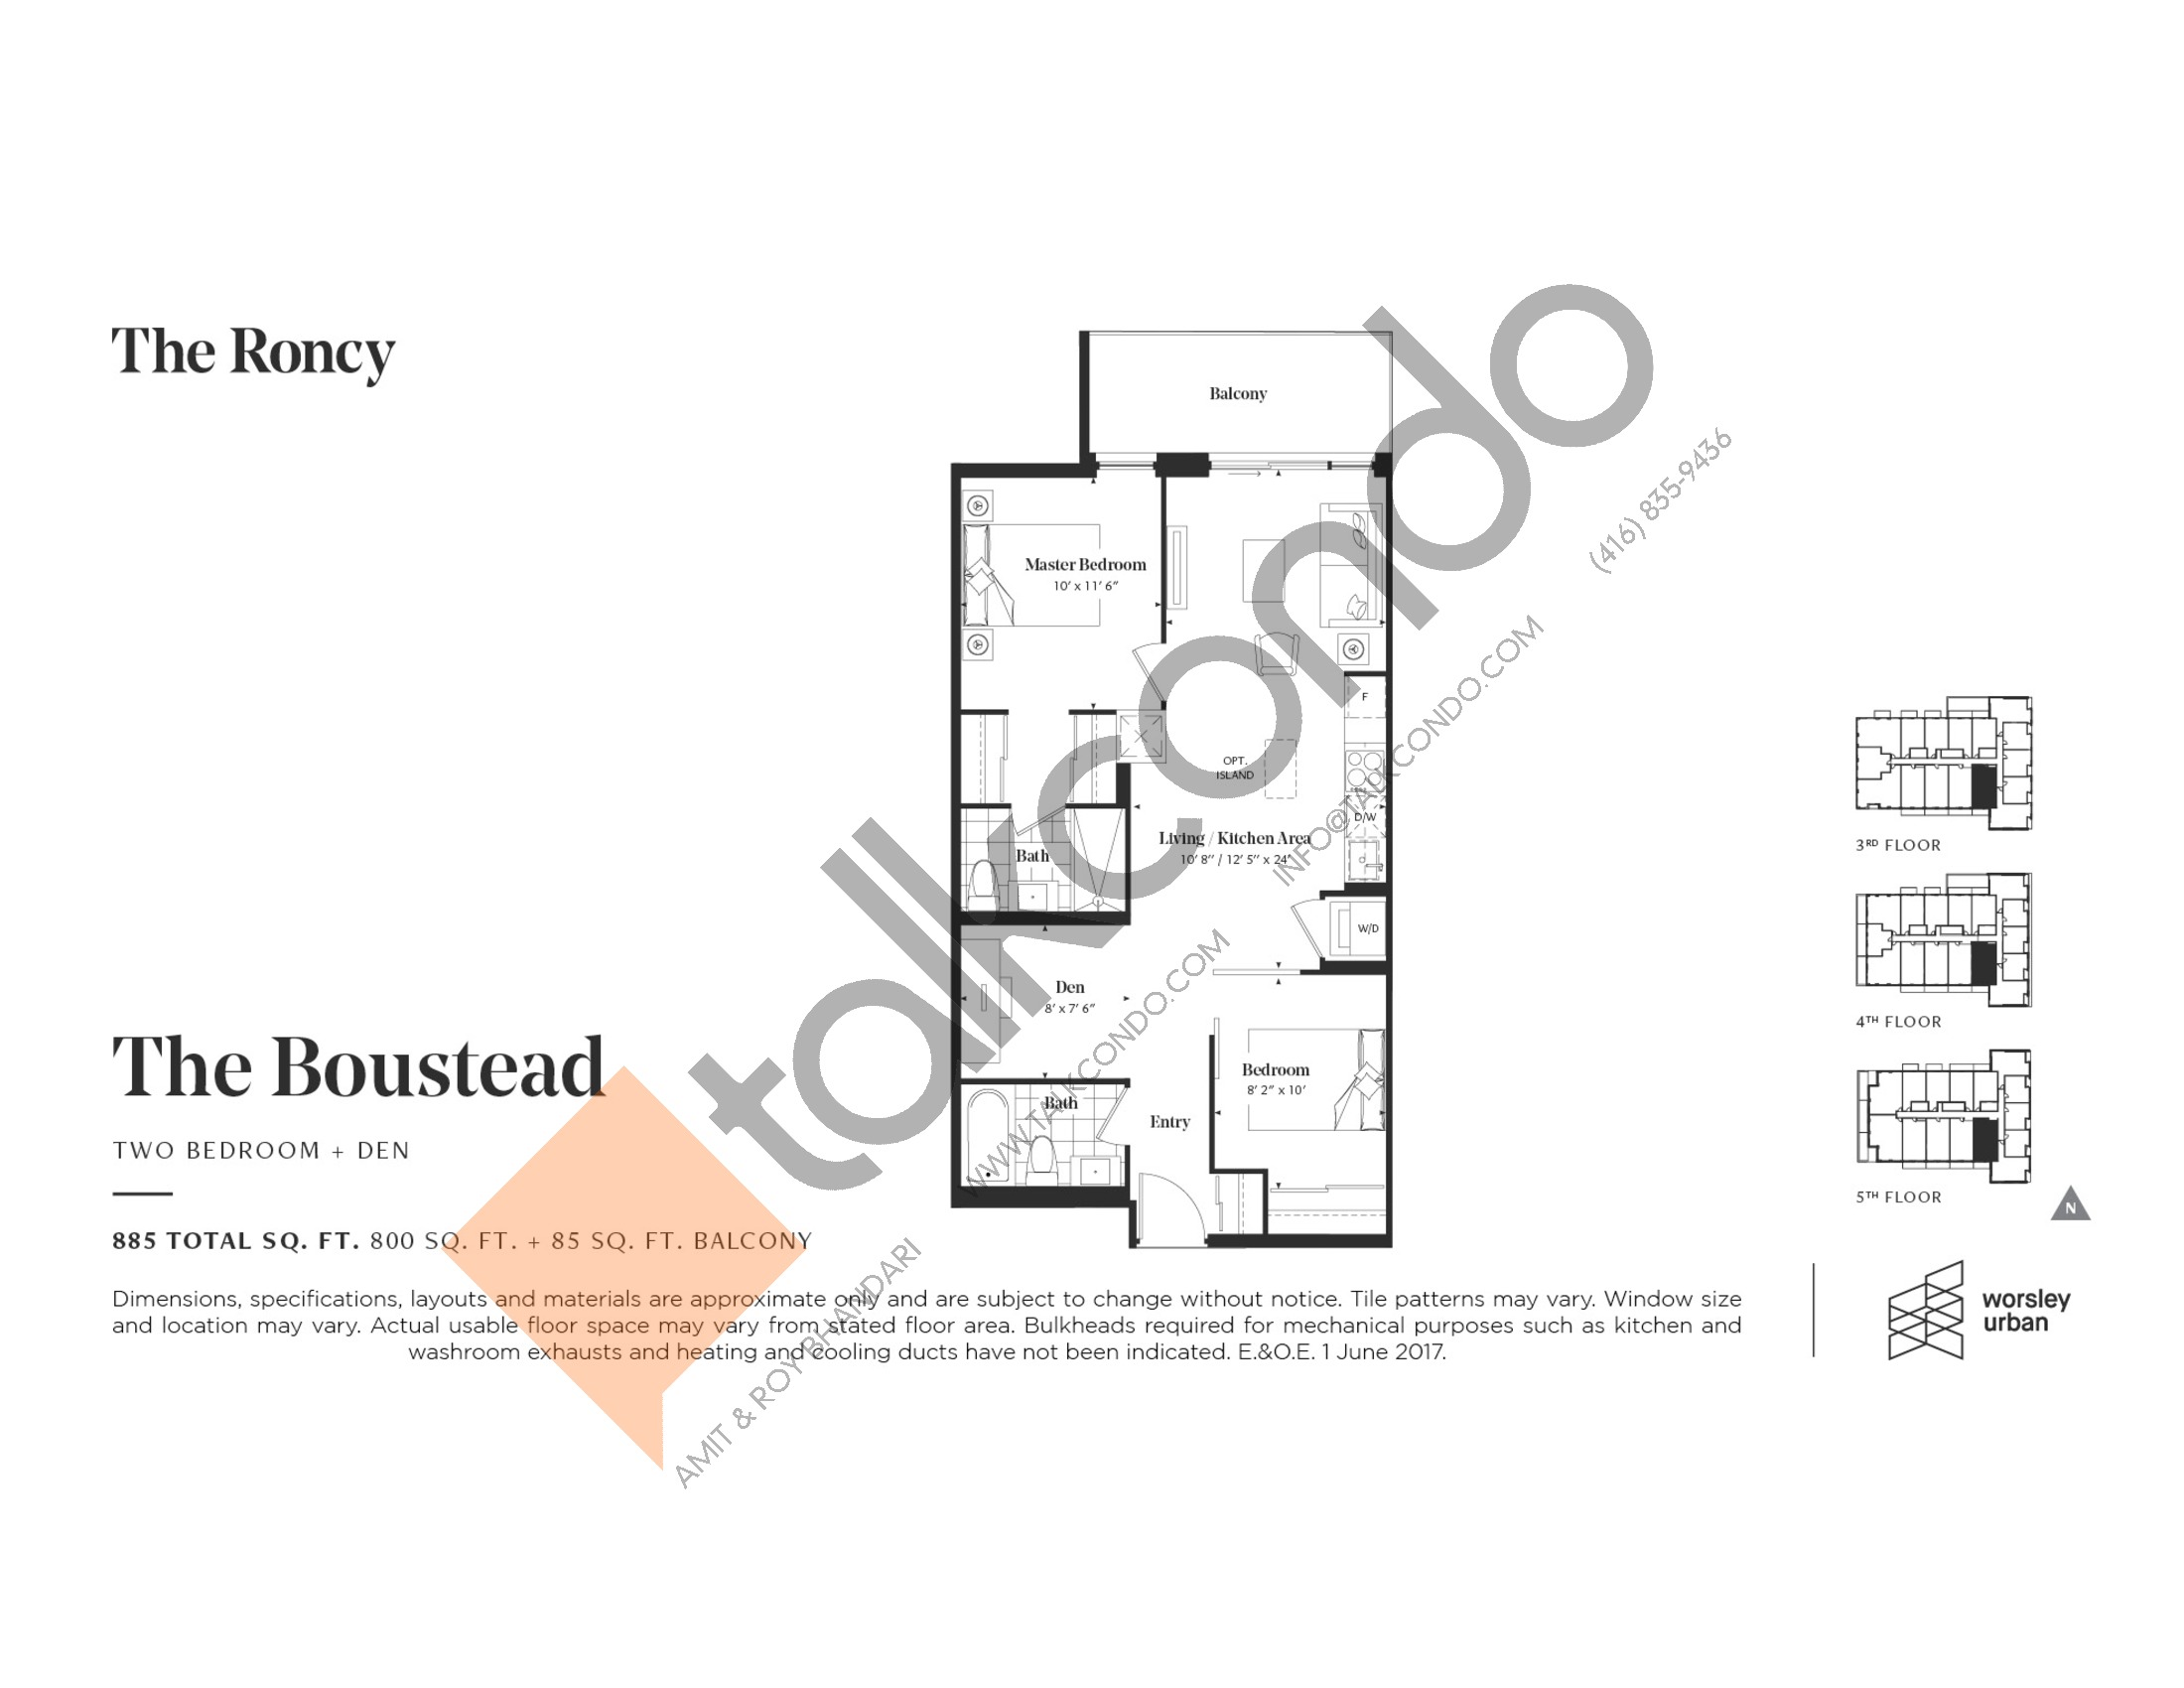 The Boustead Floor Plan at The Roncy Condos - 800 sq.ft